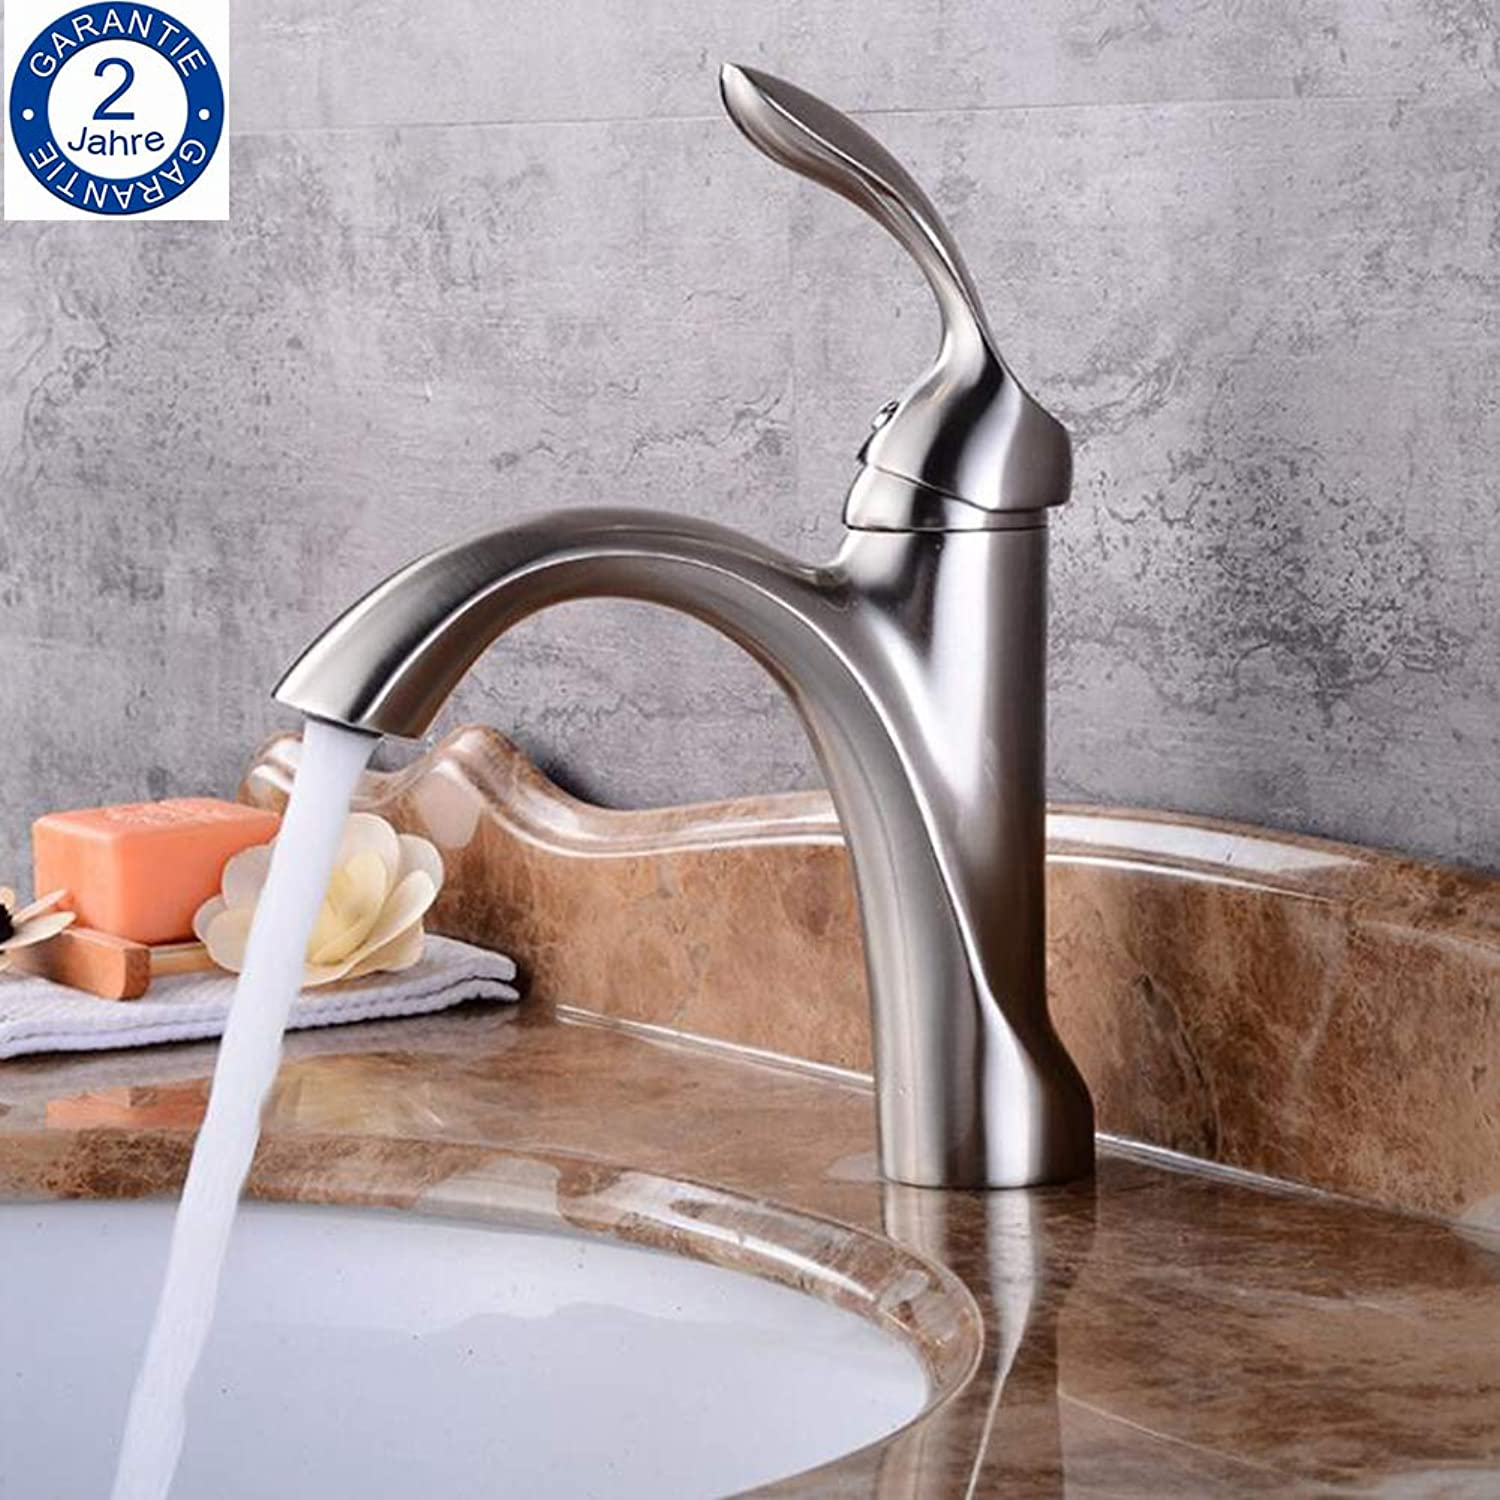 BoATX Country House Orb Bathroom Sink Mixer Tap Single Lever Bath Fittings Brass, Silver